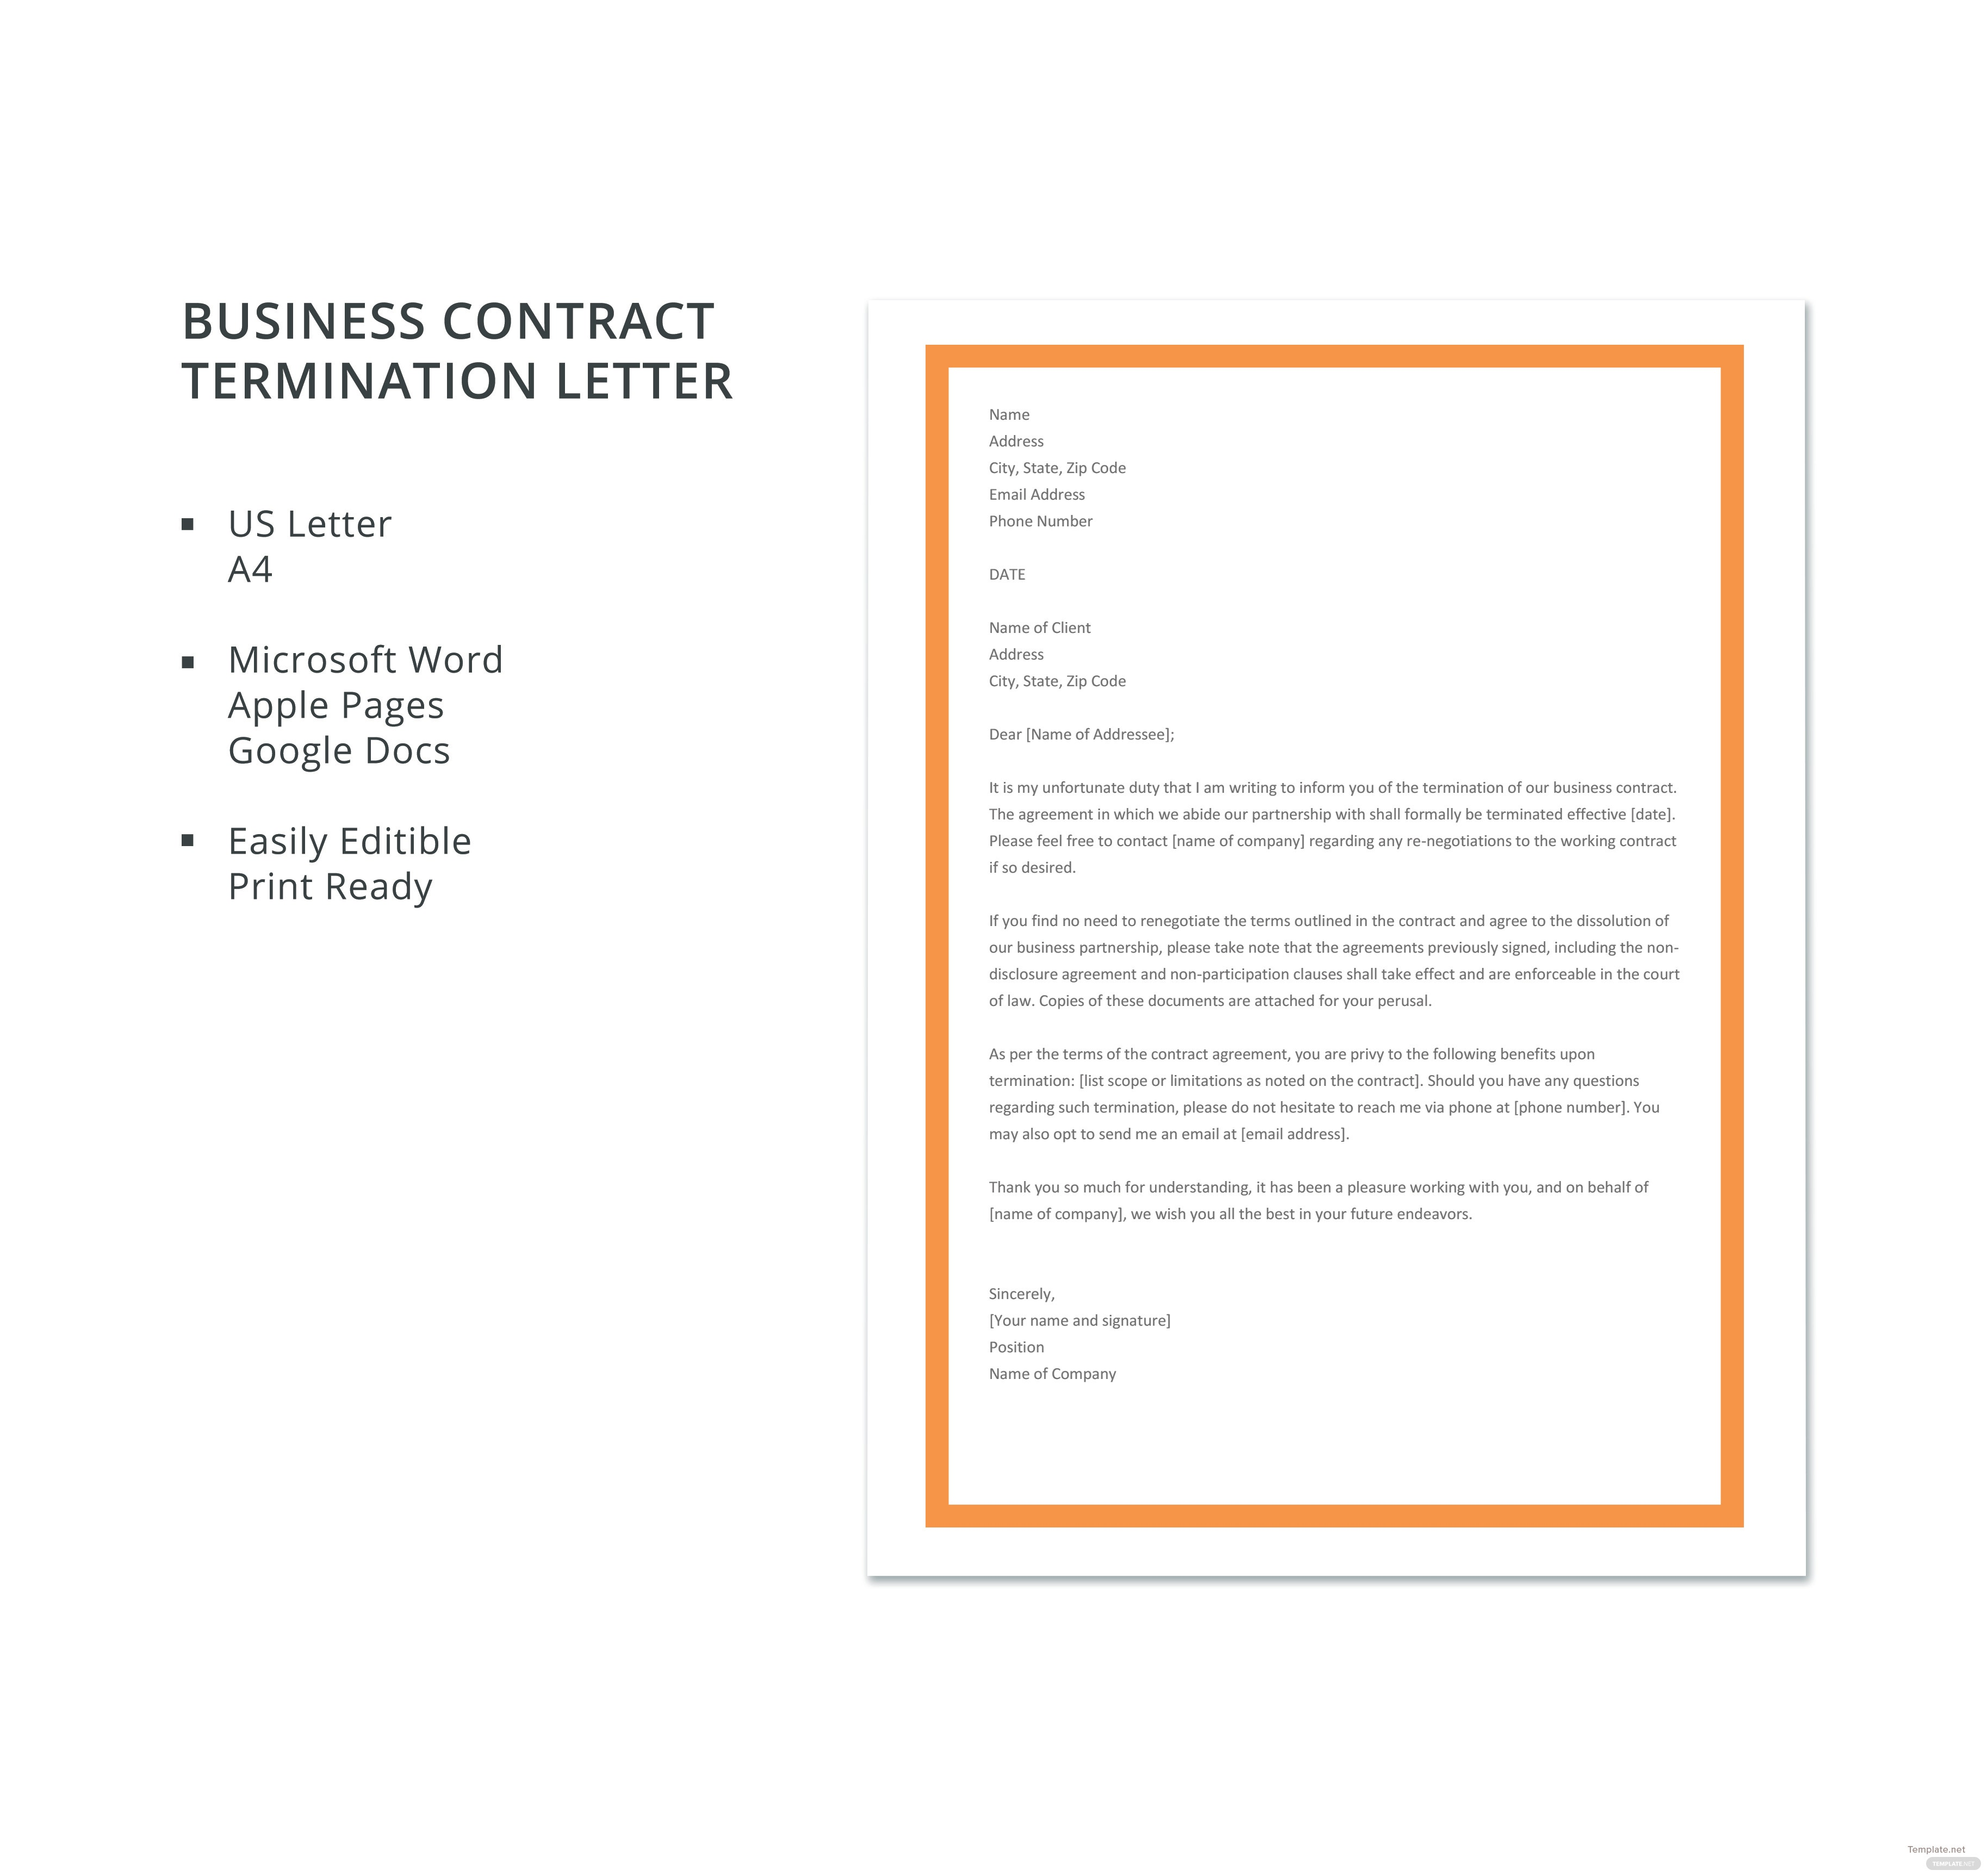 Free business contract termination letter template in microsoft word free business contract termination letter template spiritdancerdesigns Choice Image